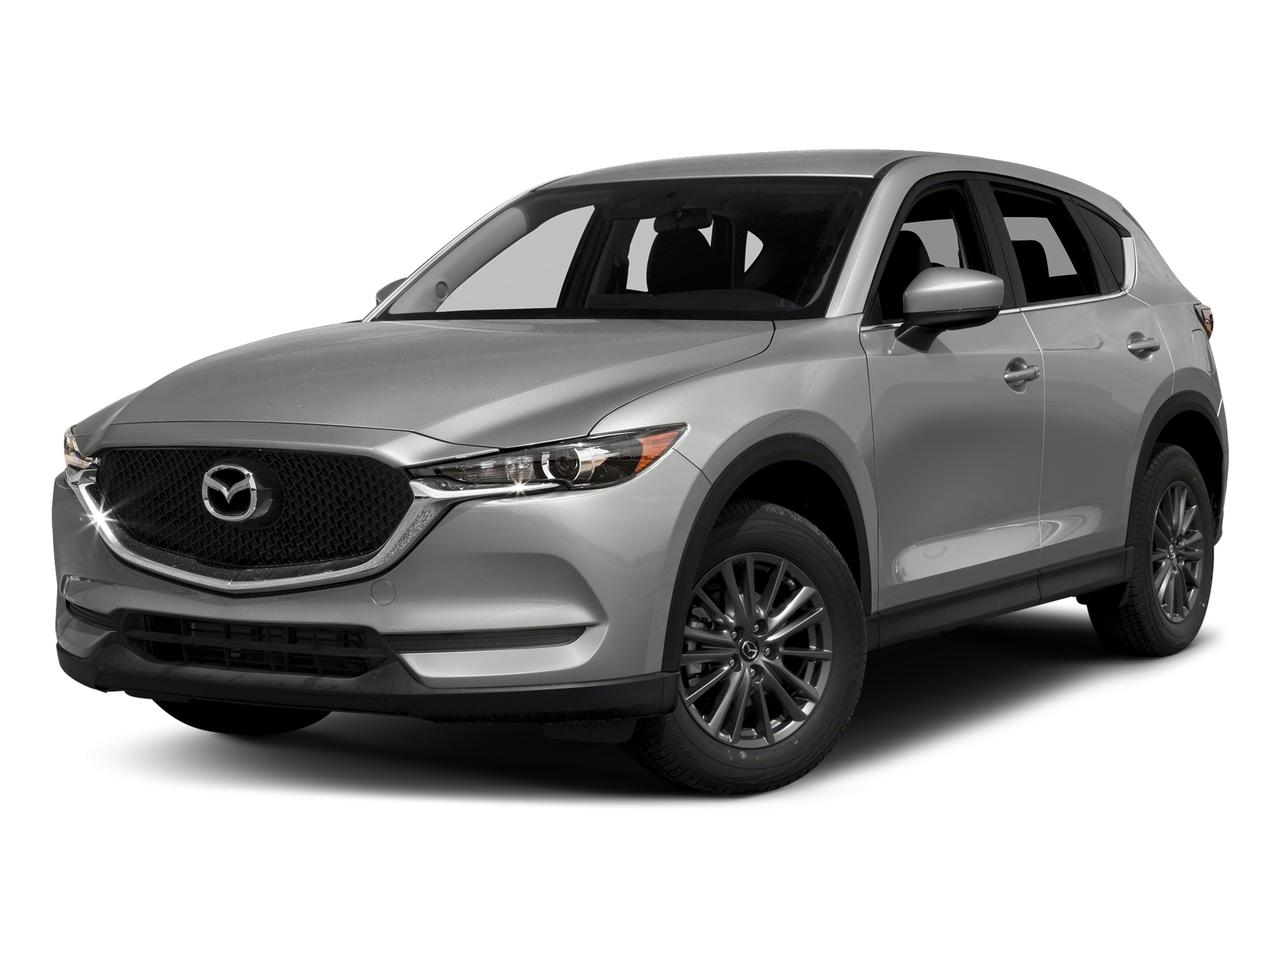 2017 Mazda CX-5 Vehicle Photo in Hamden, CT 06517